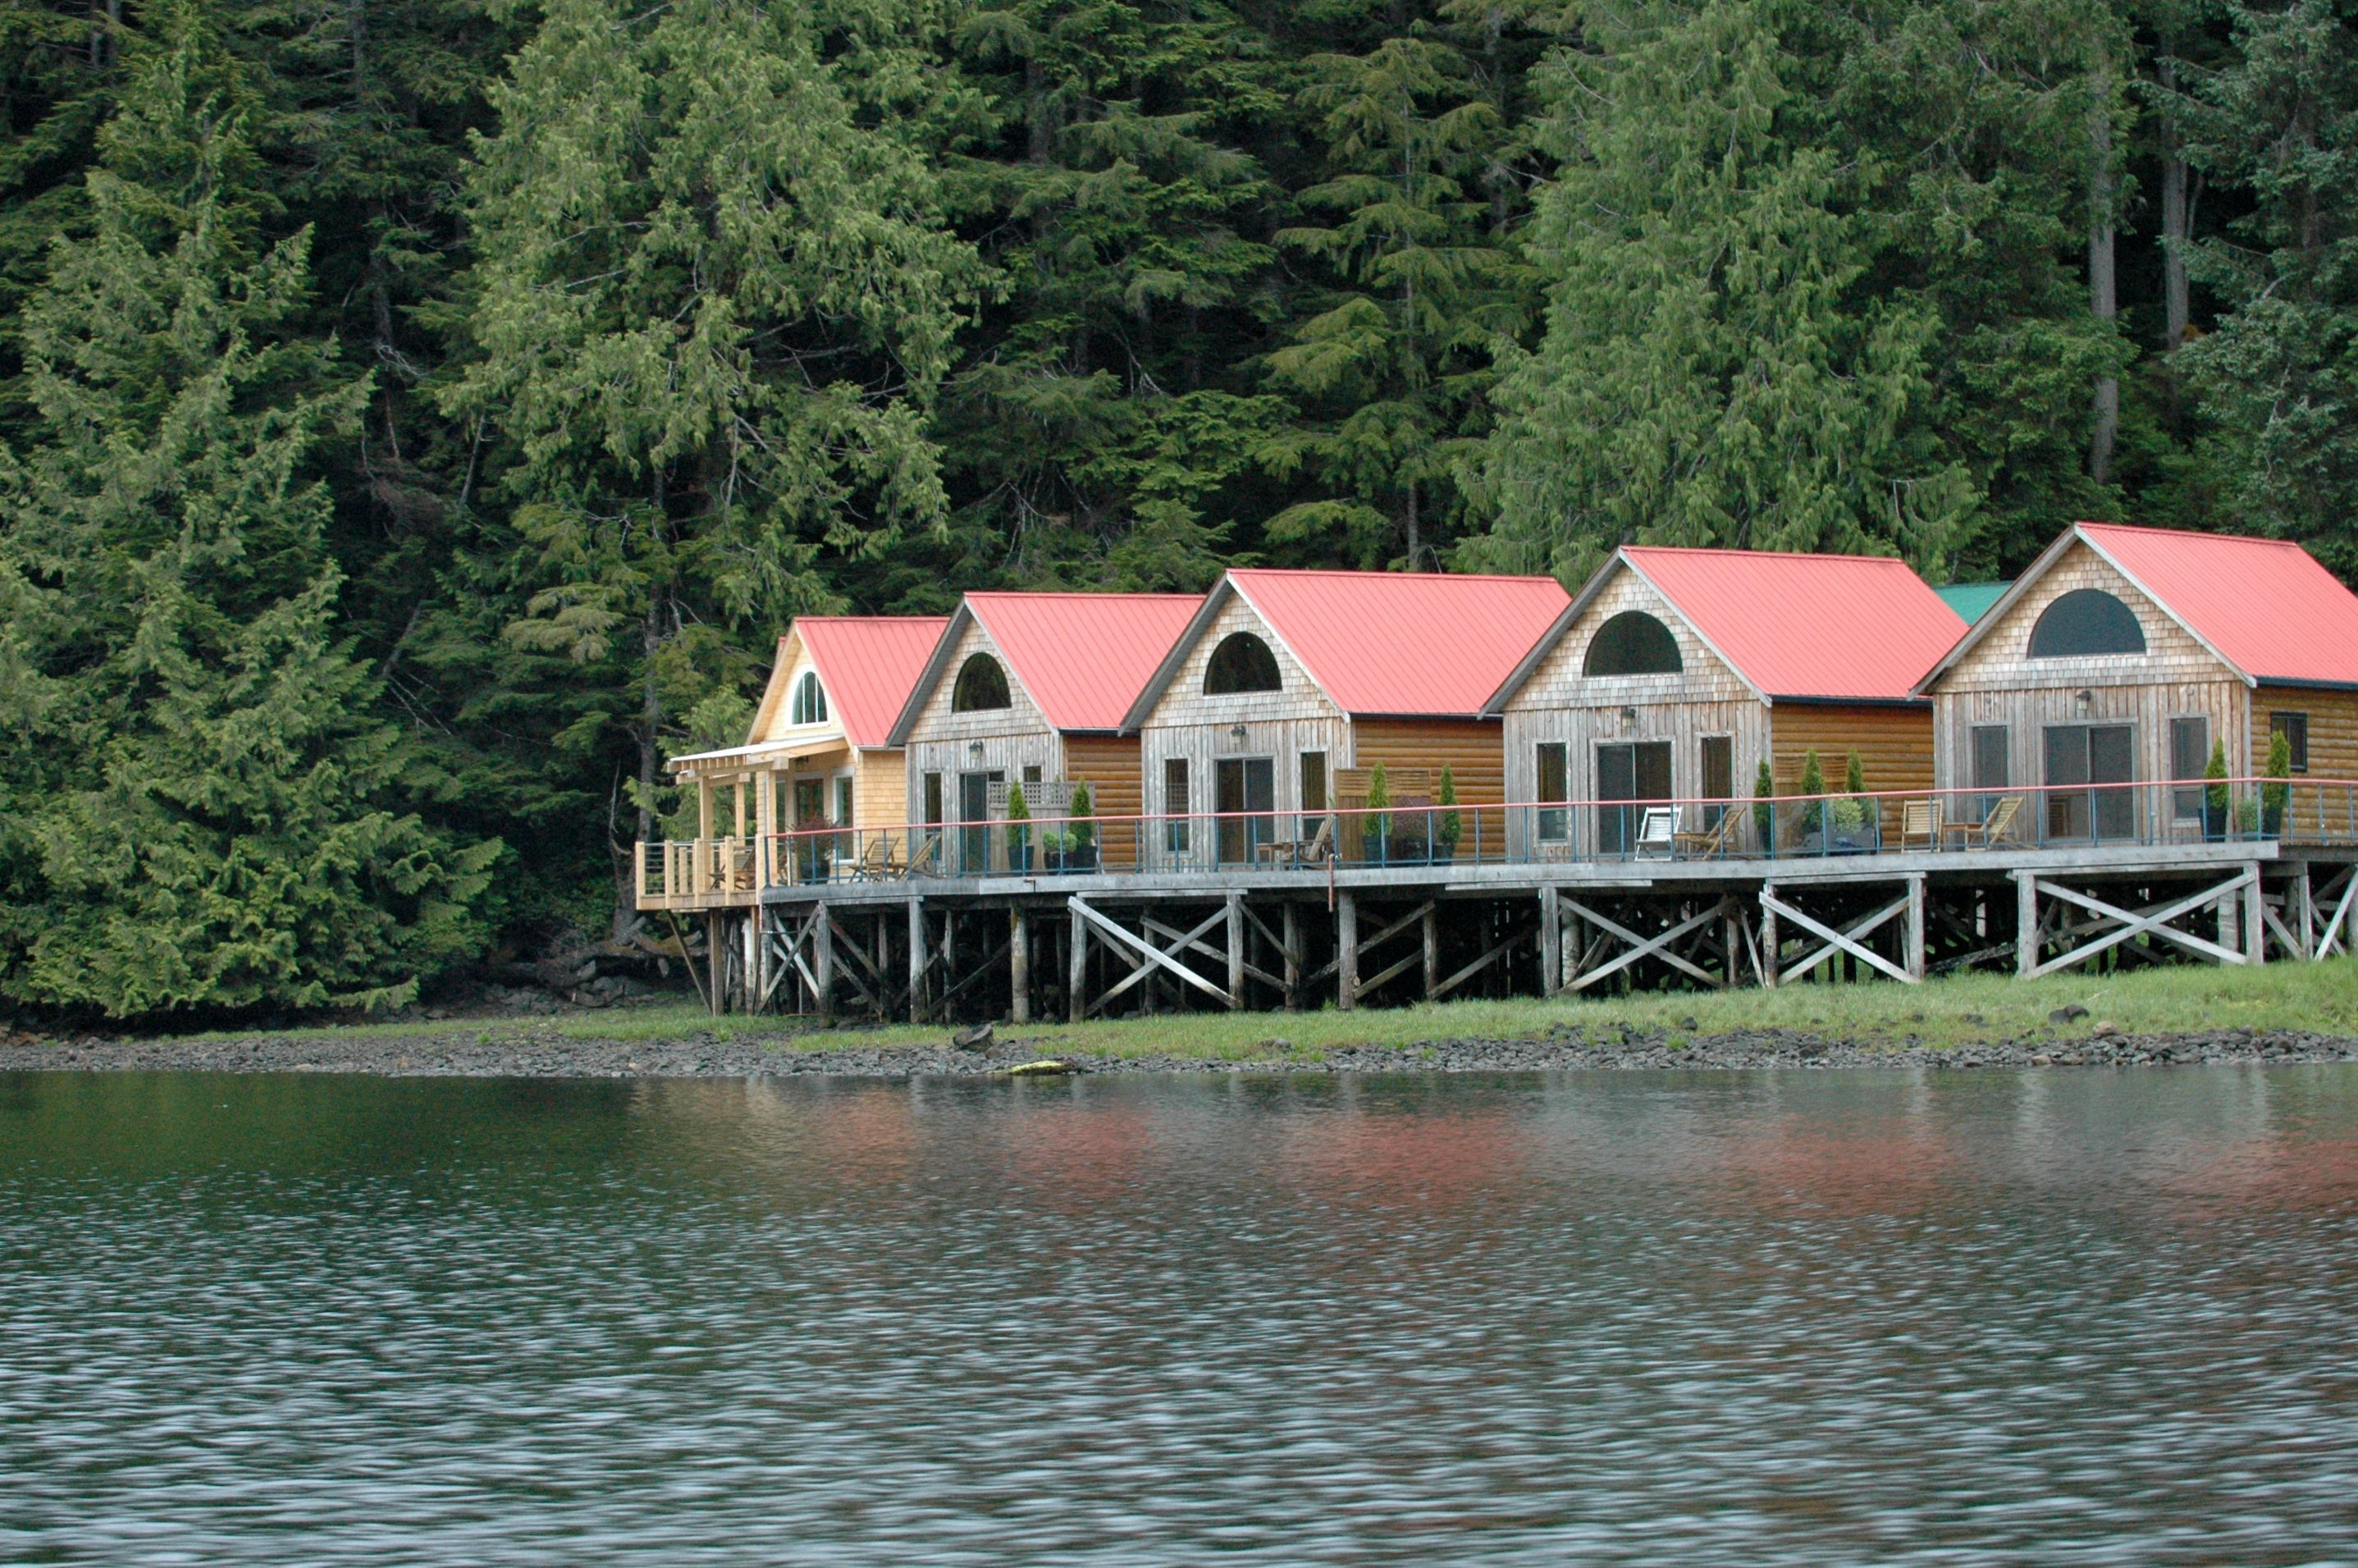 Nimmo bay resort is one of several luxury floating camps for British columbia fishing lodges